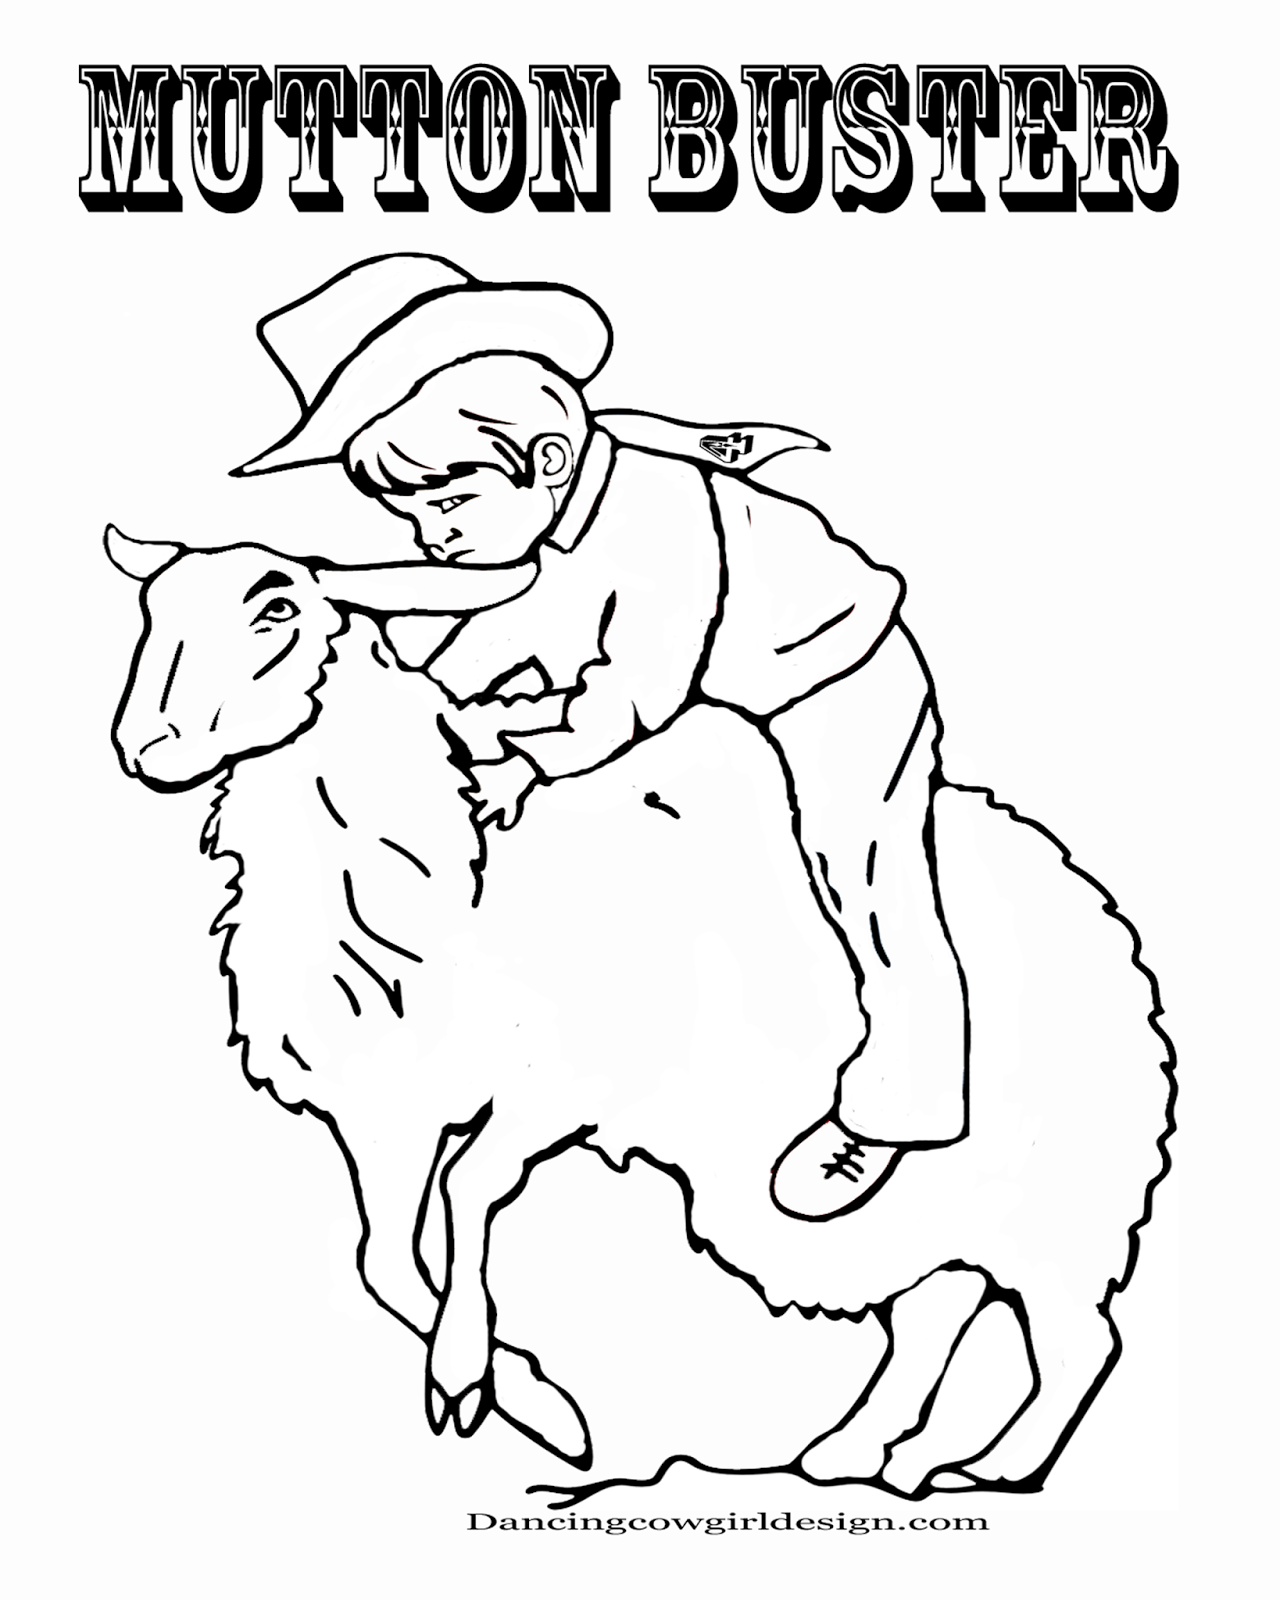 RODEO COLORING PAGES: Cowboy Coloring Sheet Kid Mutton Bustin\'